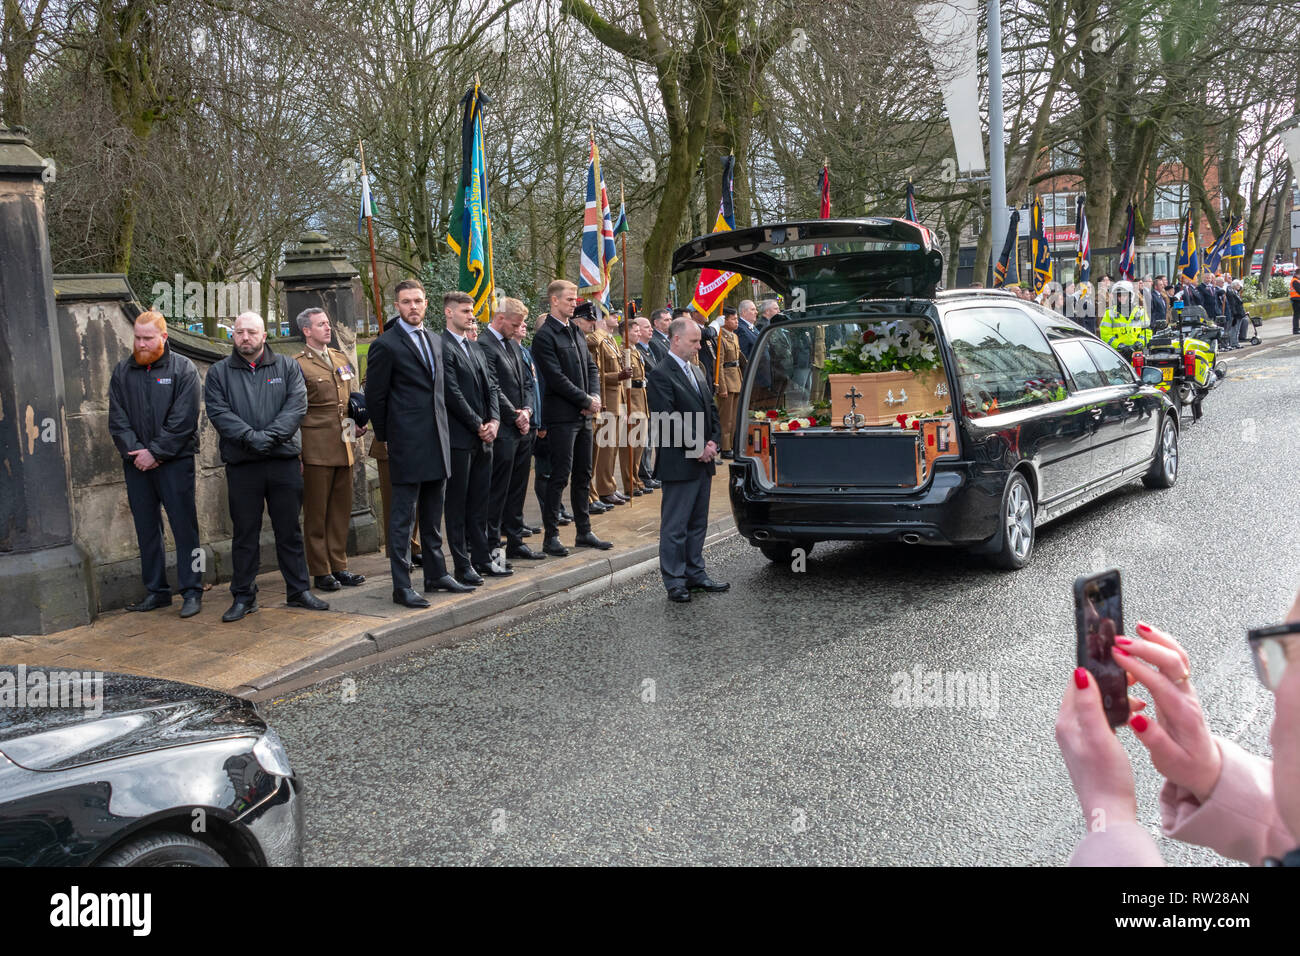 Stoke-on-Trent, Staffordshire, UK. 4th Mar 2019. Photos from the funeral service of England and Stoke City footballing legend Gordon Banks outside Stoke Minster in Stoke-on-Trent Credit: JONATHAN AYRES/Alamy Live News Stock Photo